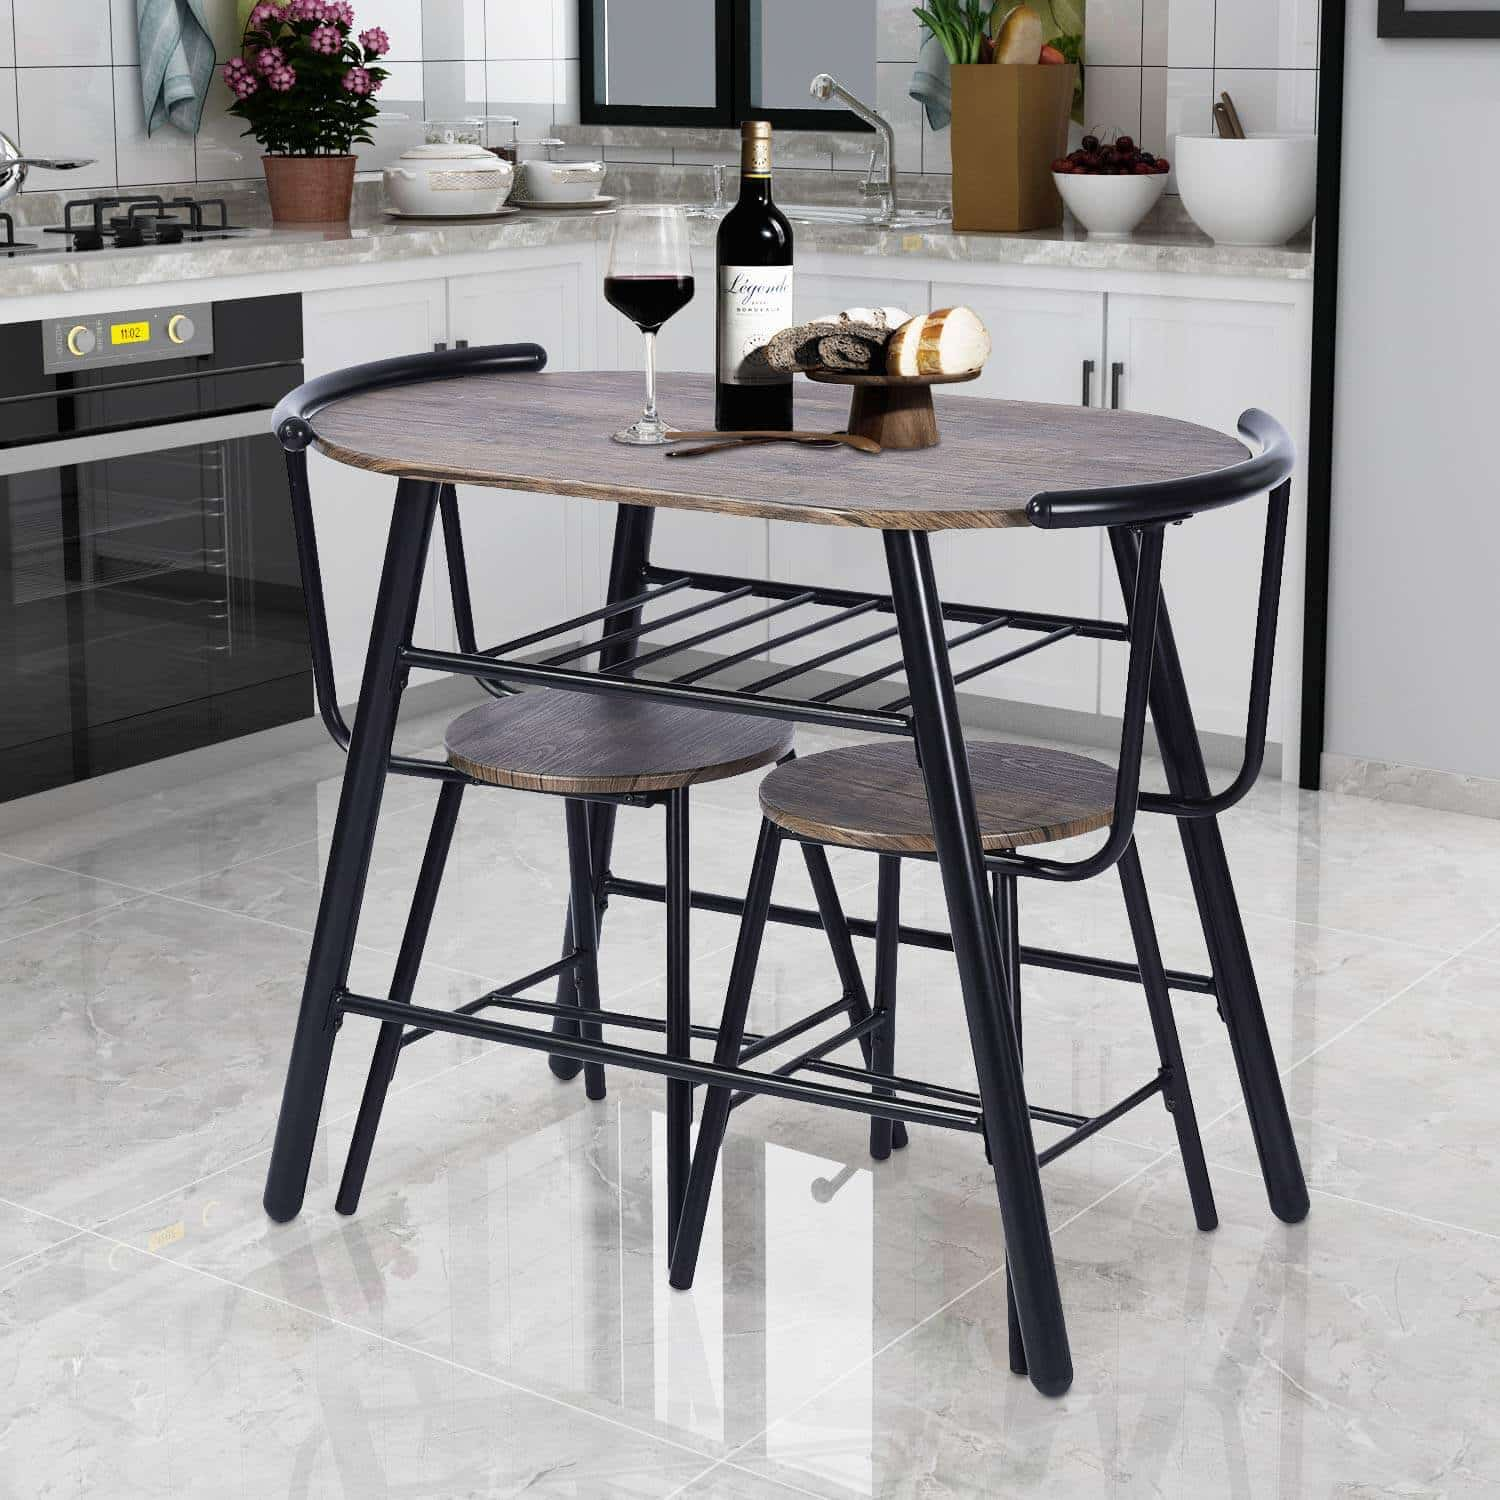 Small Kitchen Dining Table 12